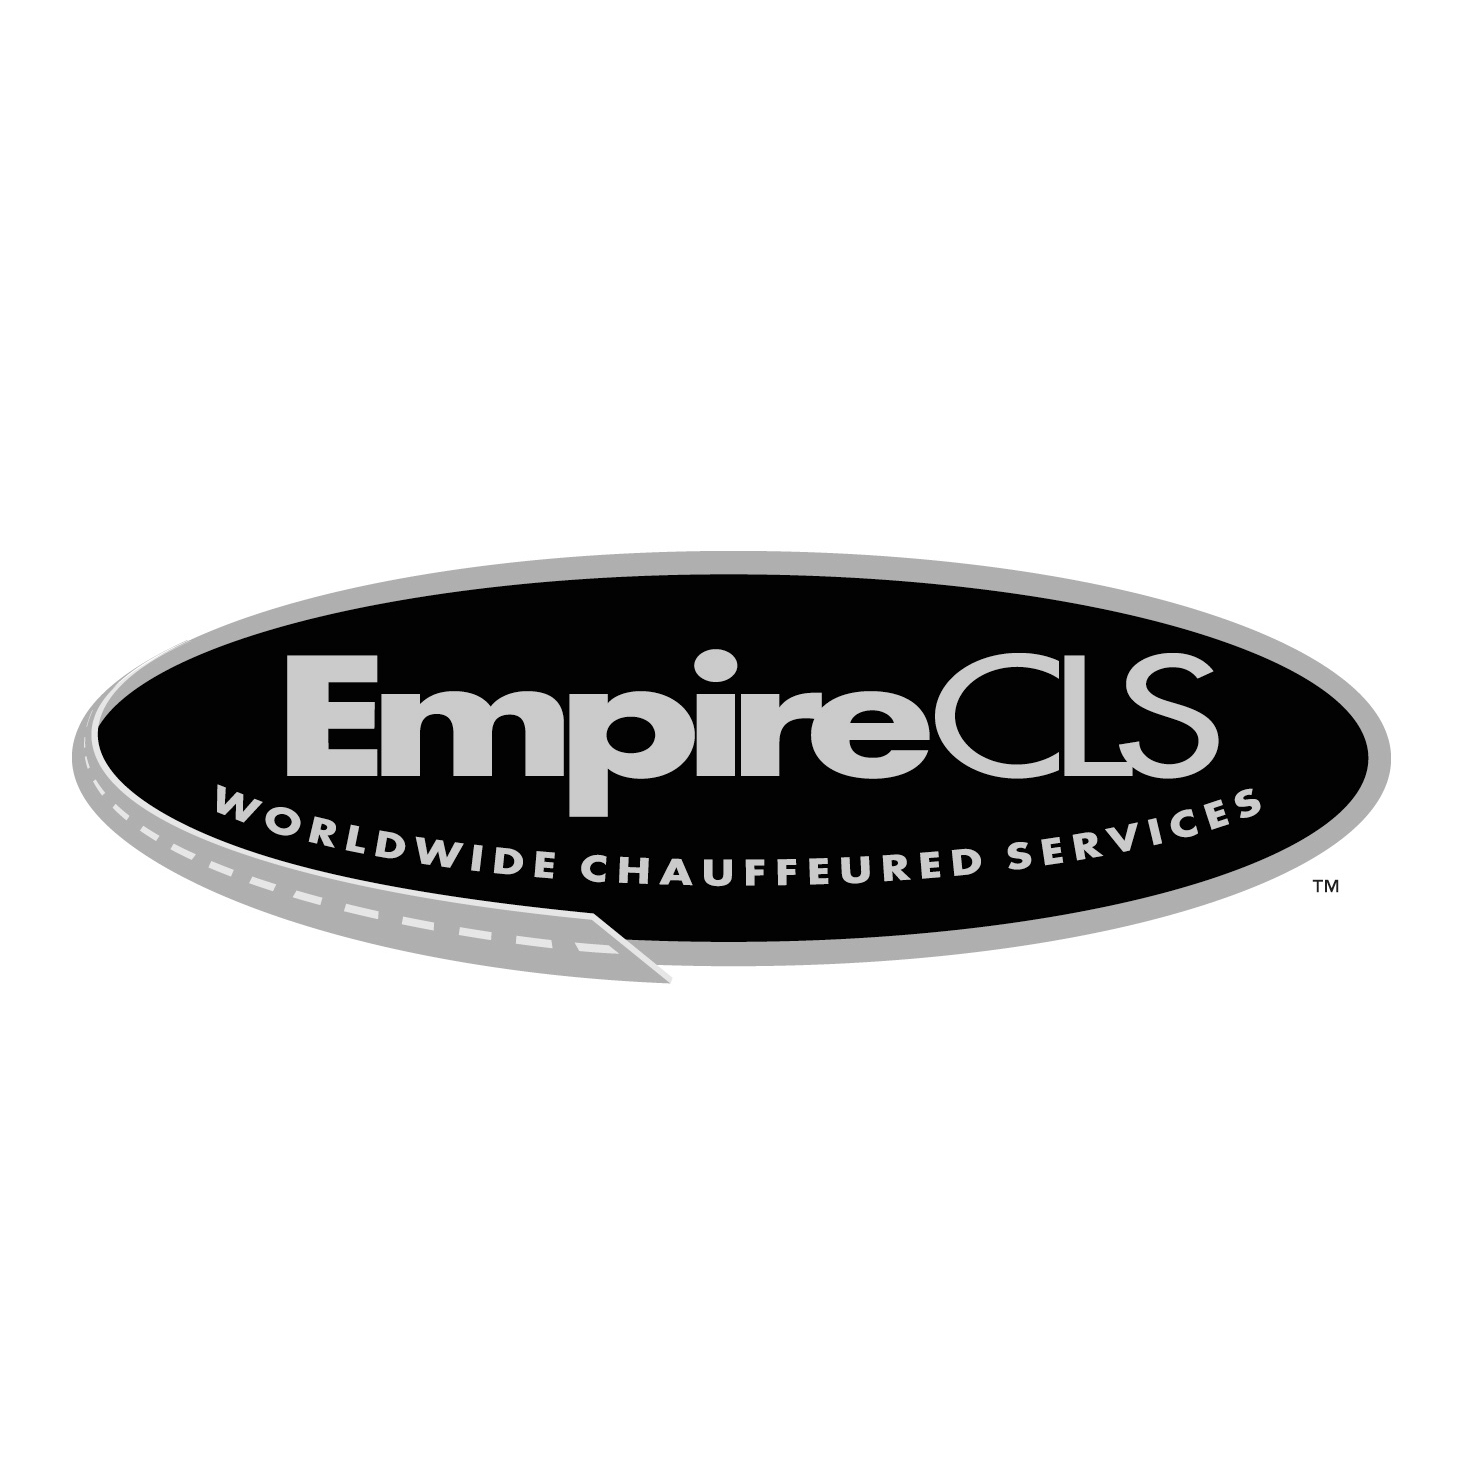 EmpireCLS Worldwide Chauffeured Services - Secaucus, NJ - Taxi Cabs & Limo Rental